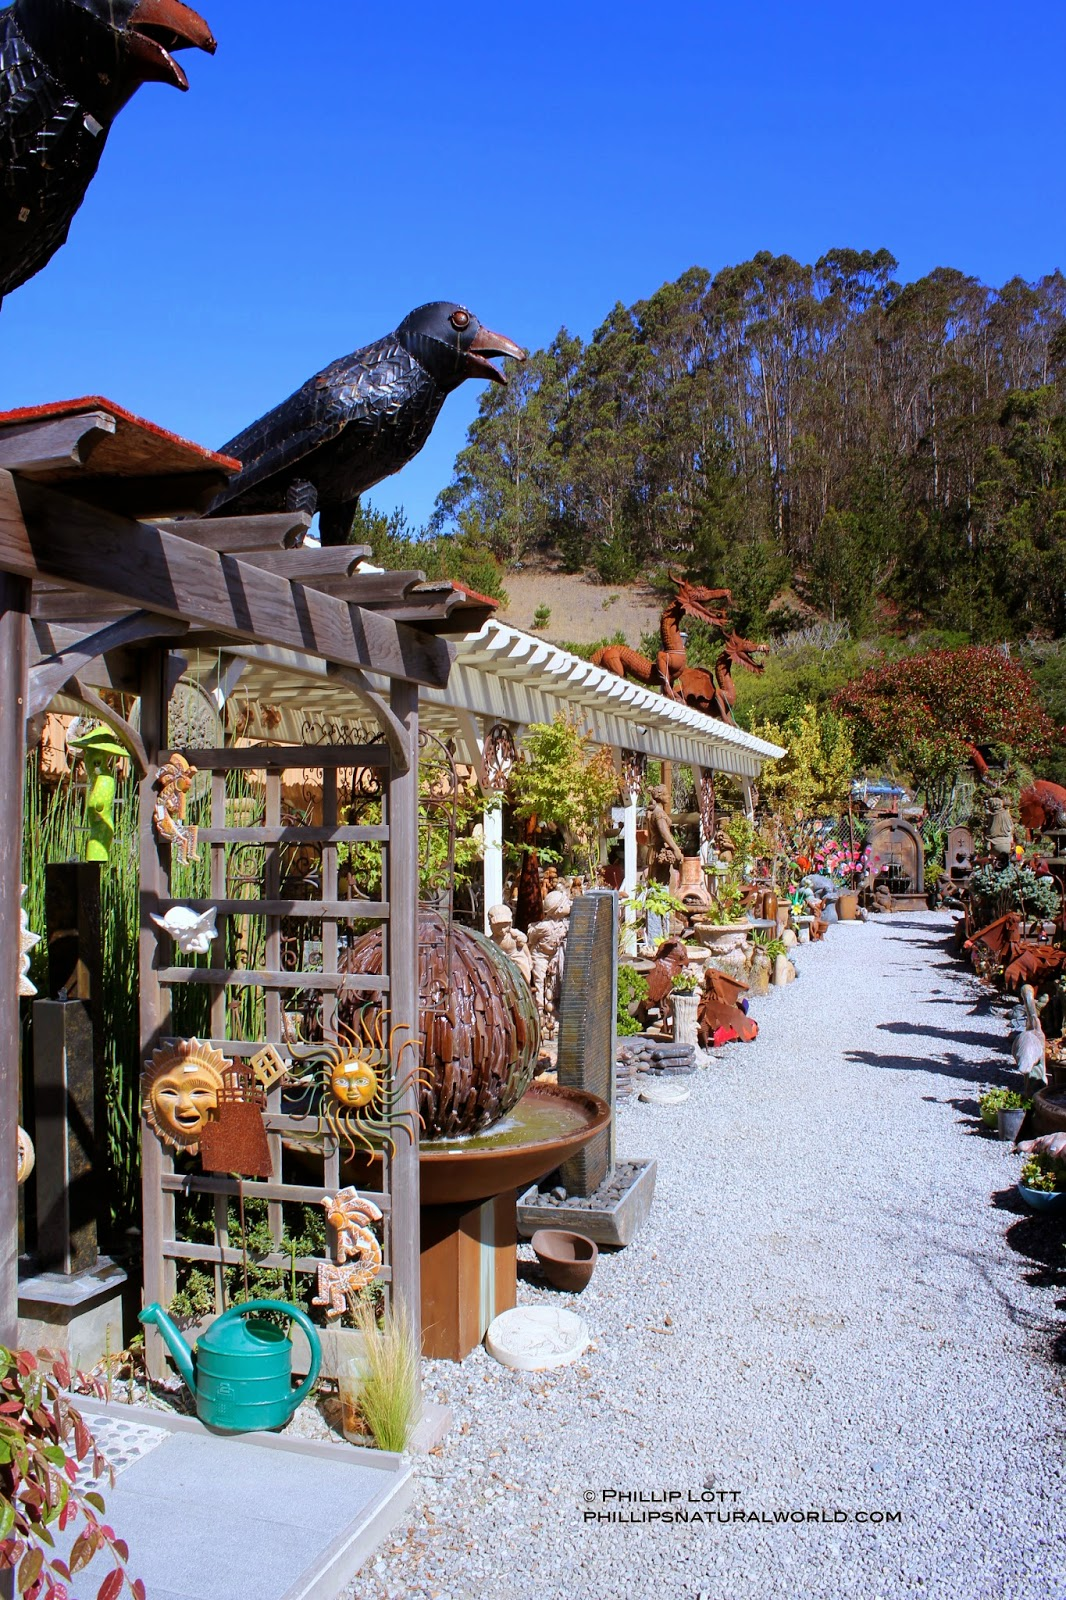 the store is massive covering several acres jam packed with inventive and creative one of a kind home and garden art